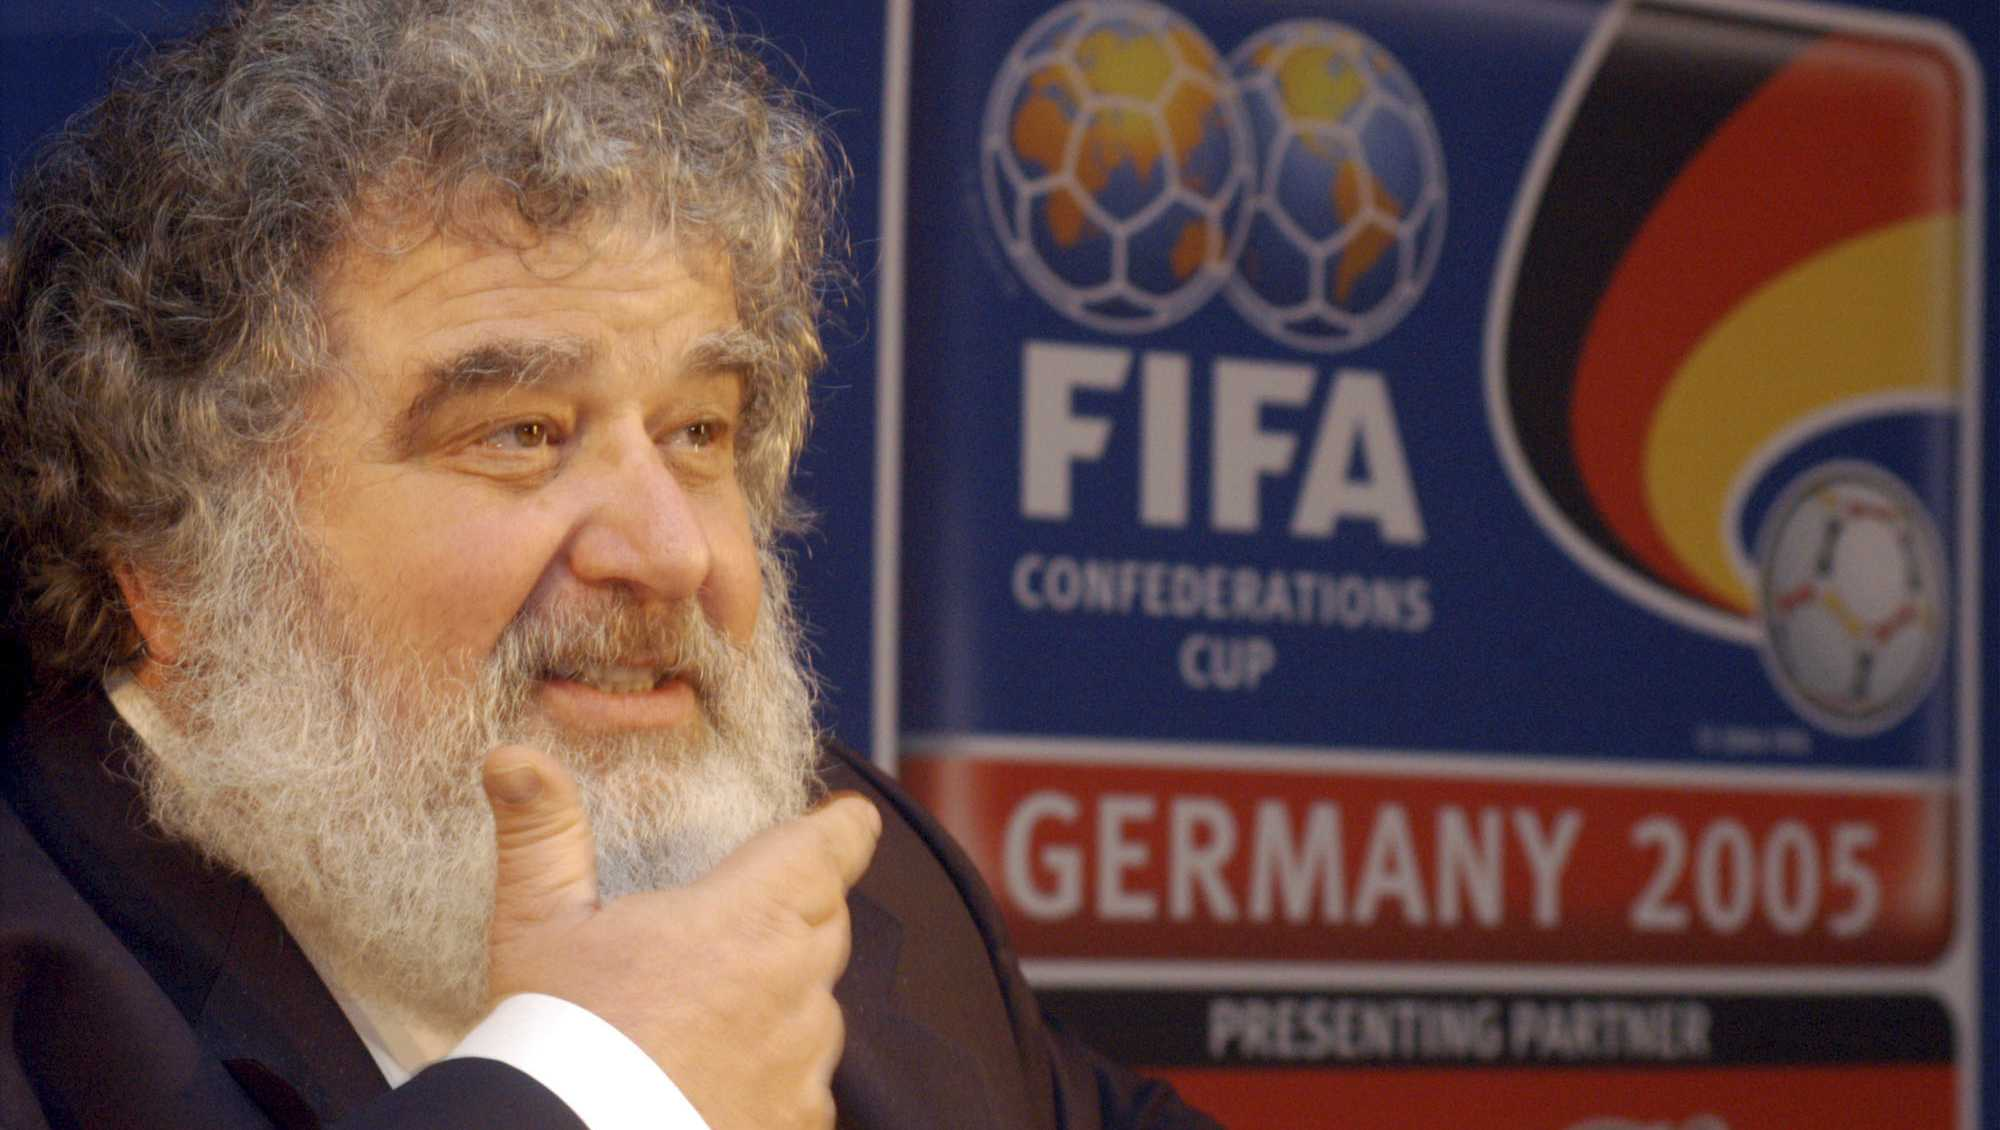 In this Feb. 14, 2005 file photo, Confederation of North, Central American and Caribbean Association Football (CONCACAF) general secretary Chuck Blazer attends a press conference in Frankfurt, Germany. Blazer, the disgraced American soccer executive whose admissions of corruption set off a global scandal that ultimately toppled FIFA President Sepp Blatter, has died. He was 72. Blazer's death was announced Wednesday, July 12, 2017, by his lawyers, Eric Corngold and Mary Mulligan.